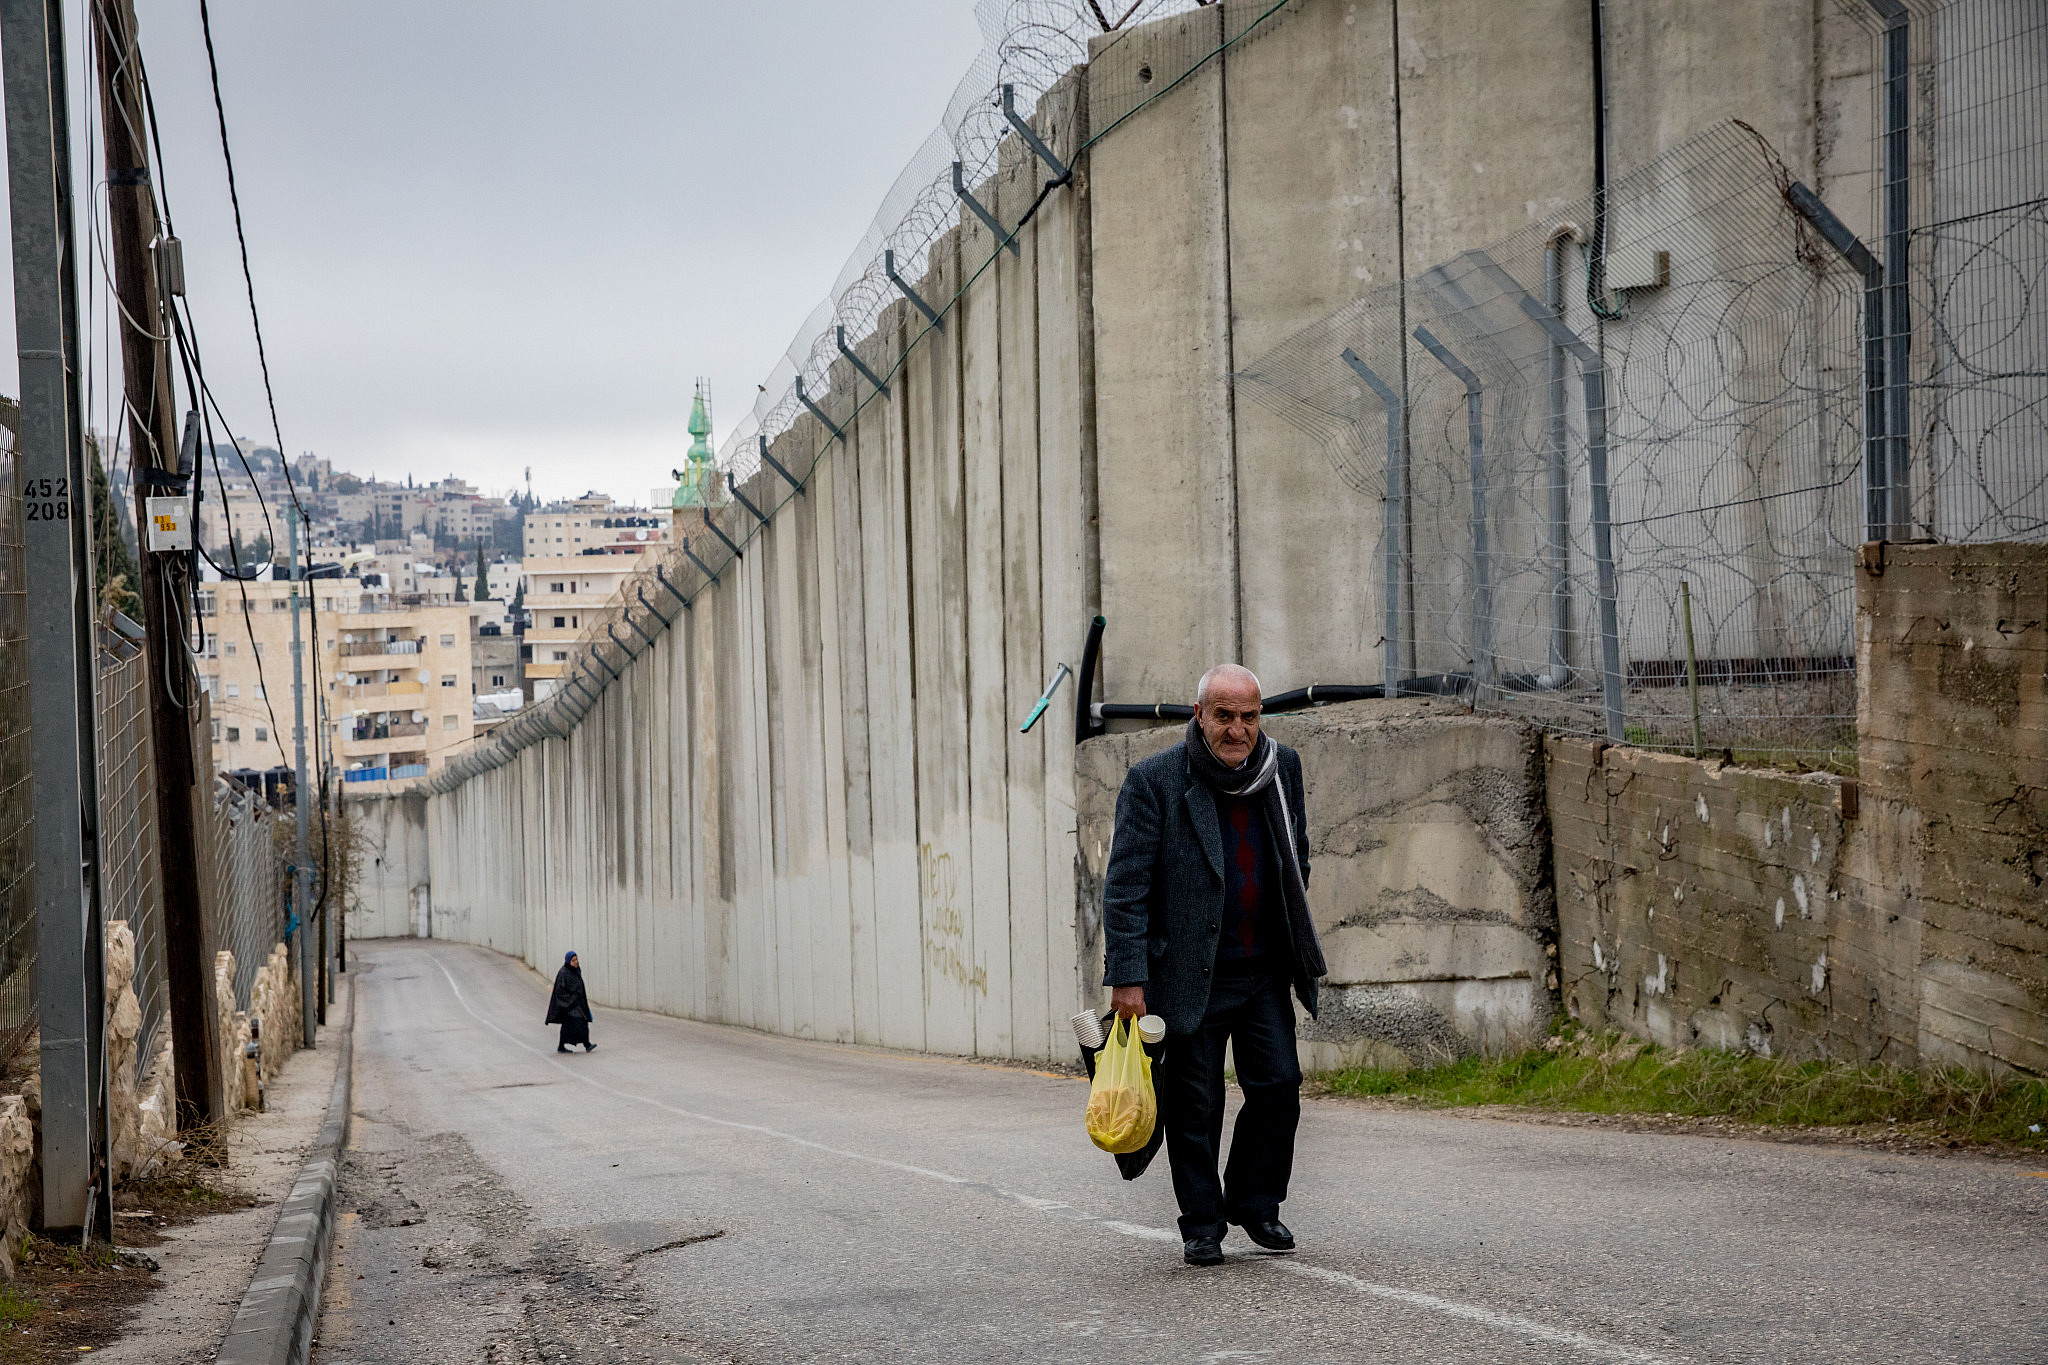 Palestinians walk past a section of the separation wall in the East Jerusalem village of Abu Dis, February 2, 2020. (Olivier Fitoussi/Flash90)